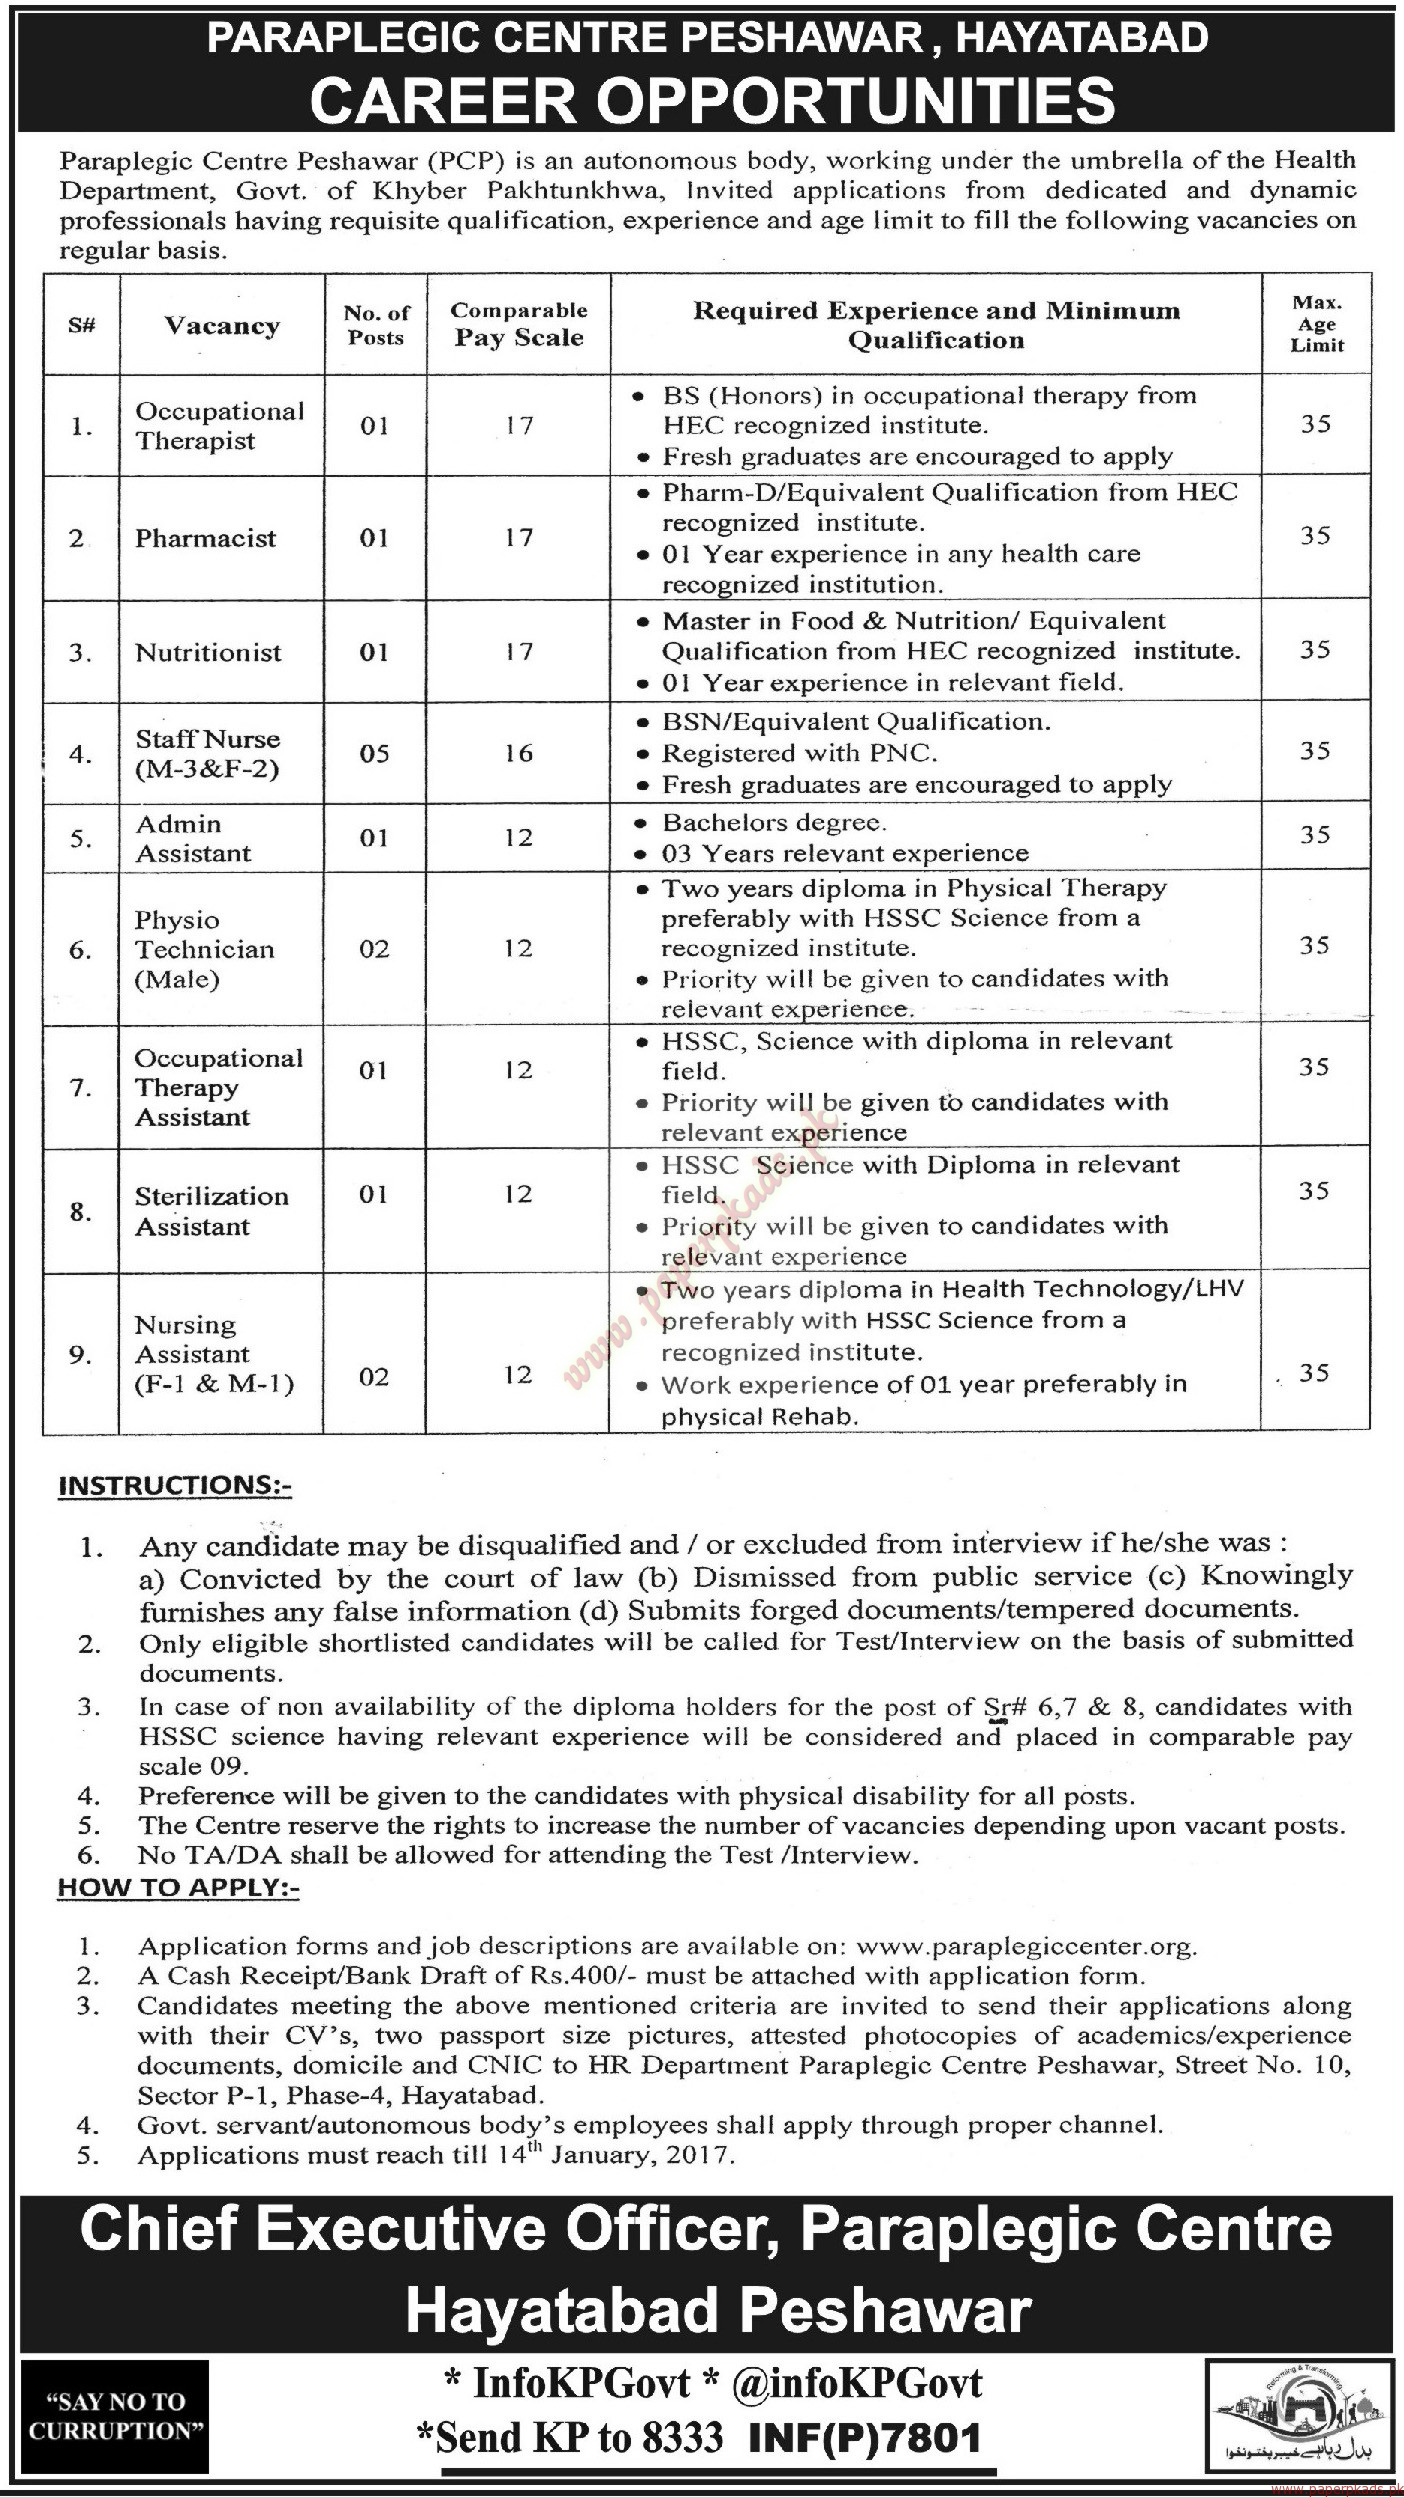 Paraplegic Centre Peshawar Jobs - Mashriq Jobs ads 31 December 2016